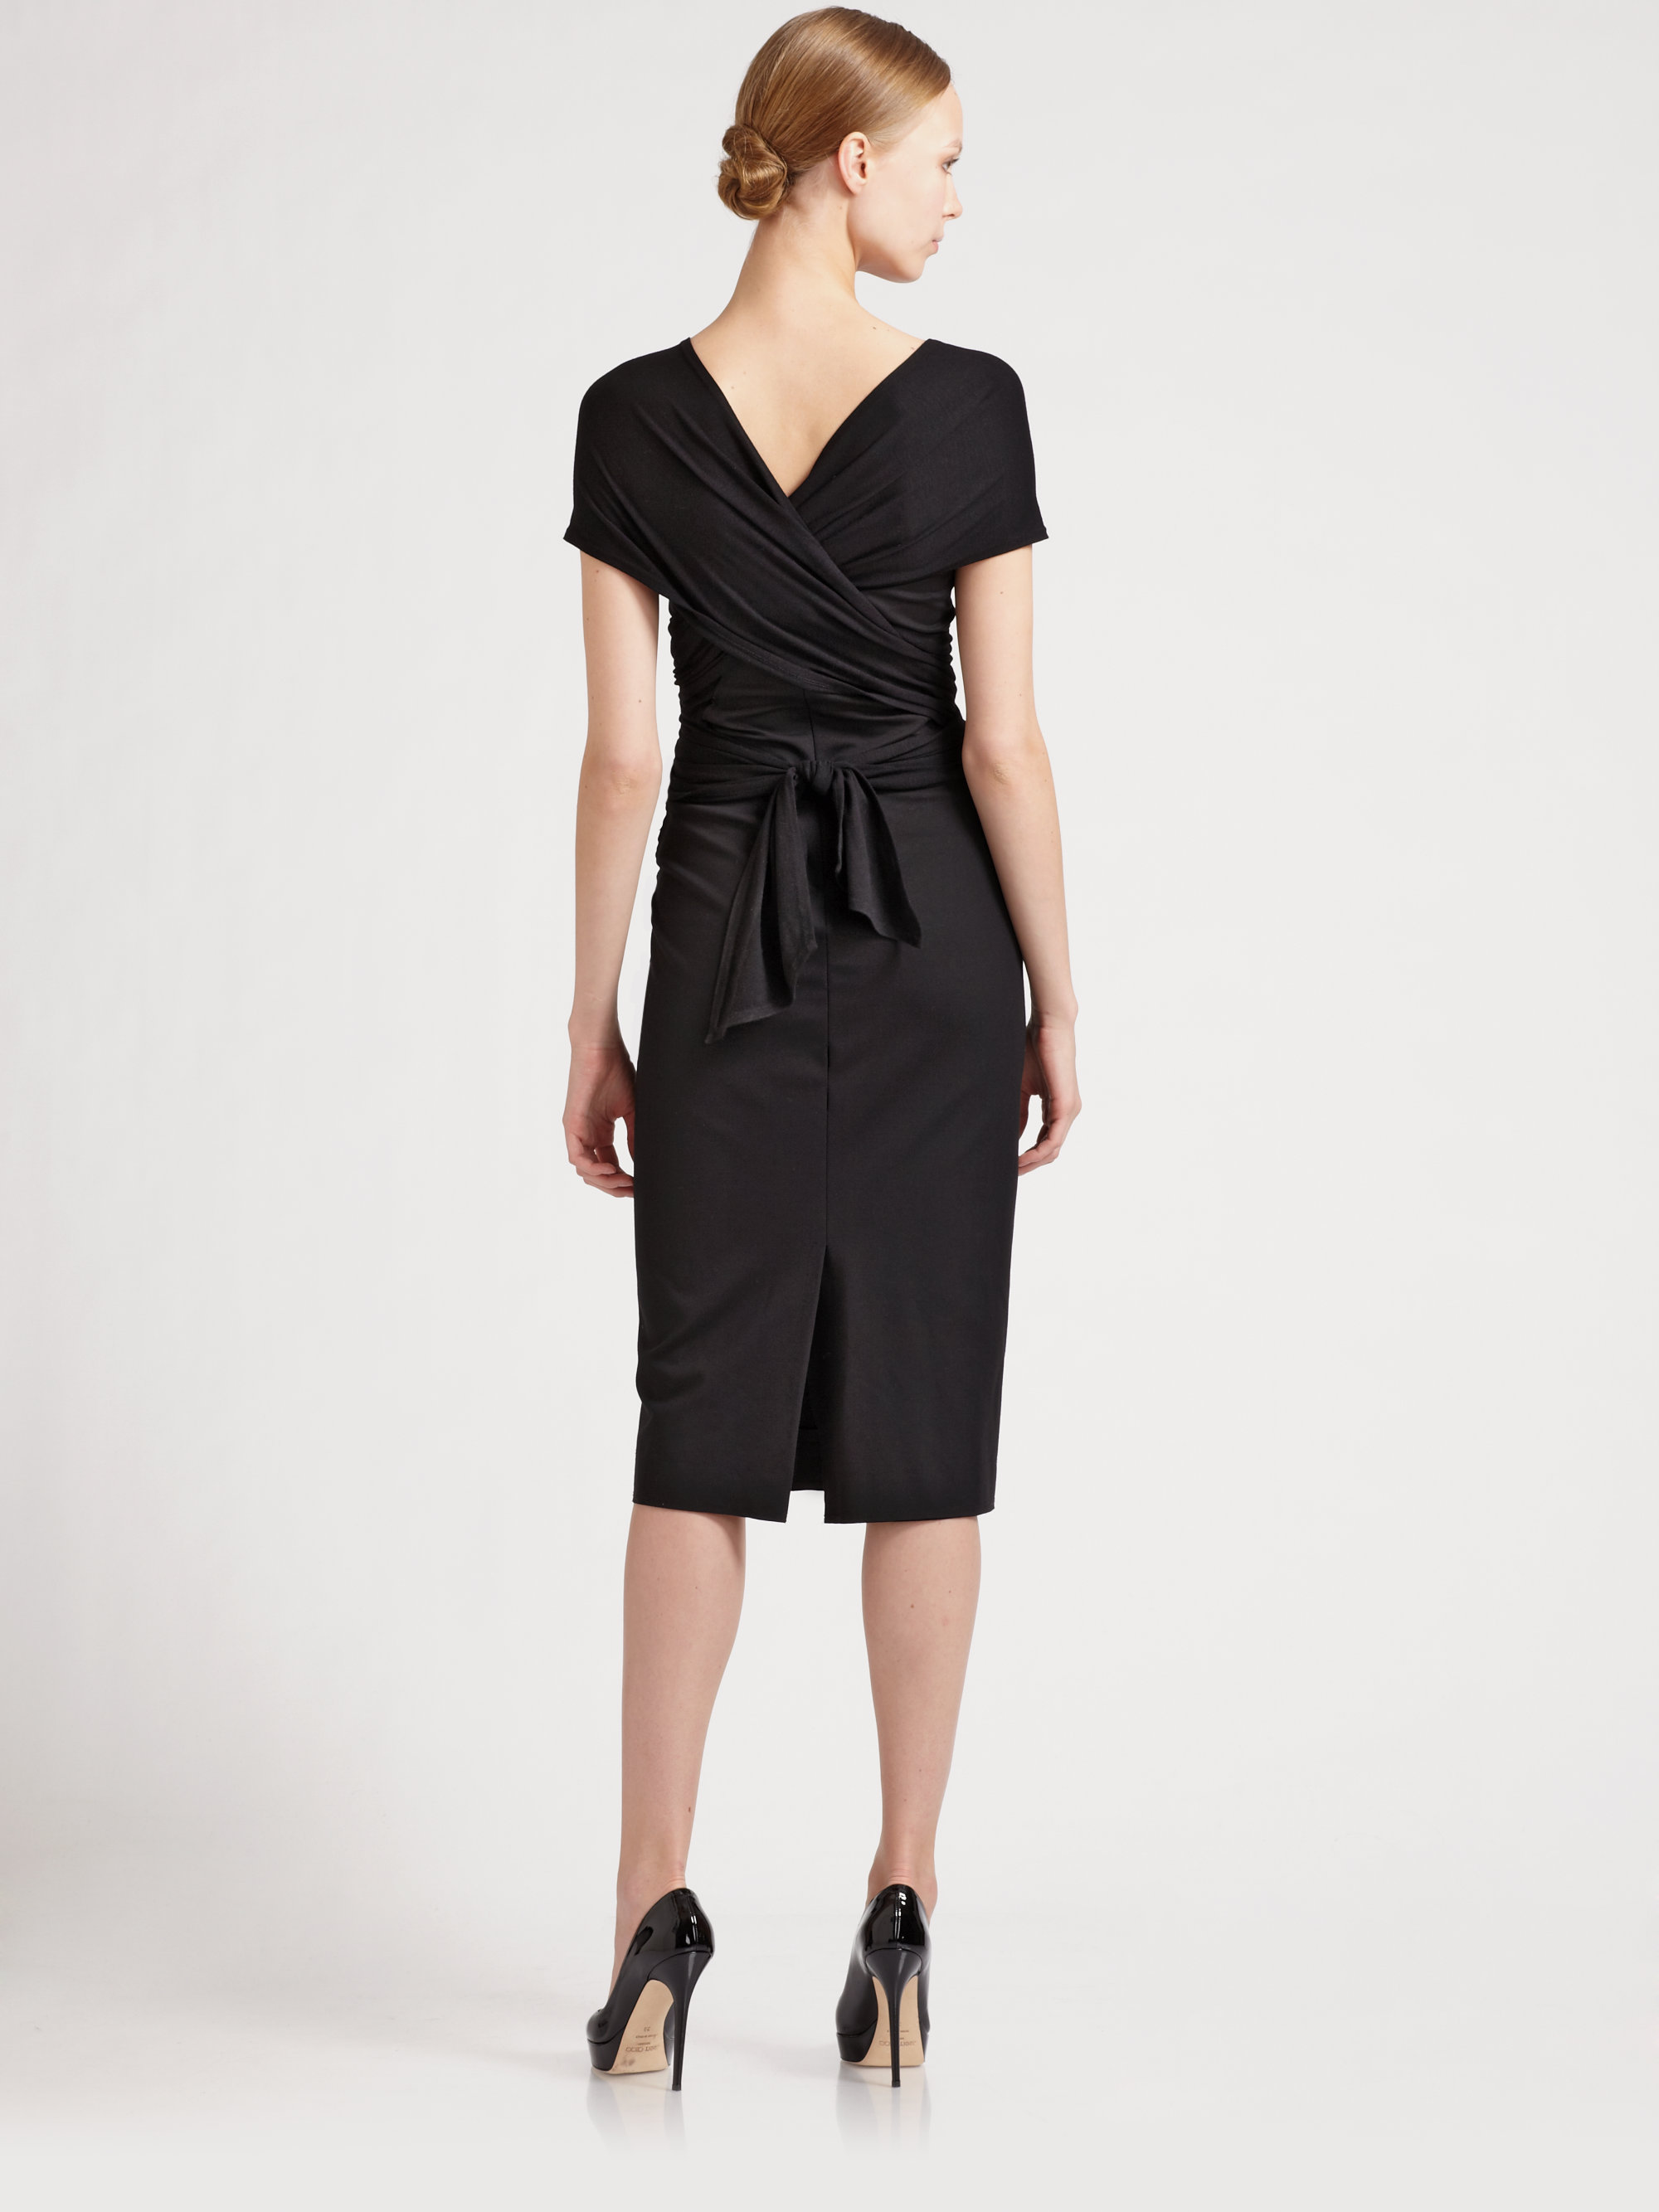 Donna Karan Sculpted Infinity Dress In Black Lyst